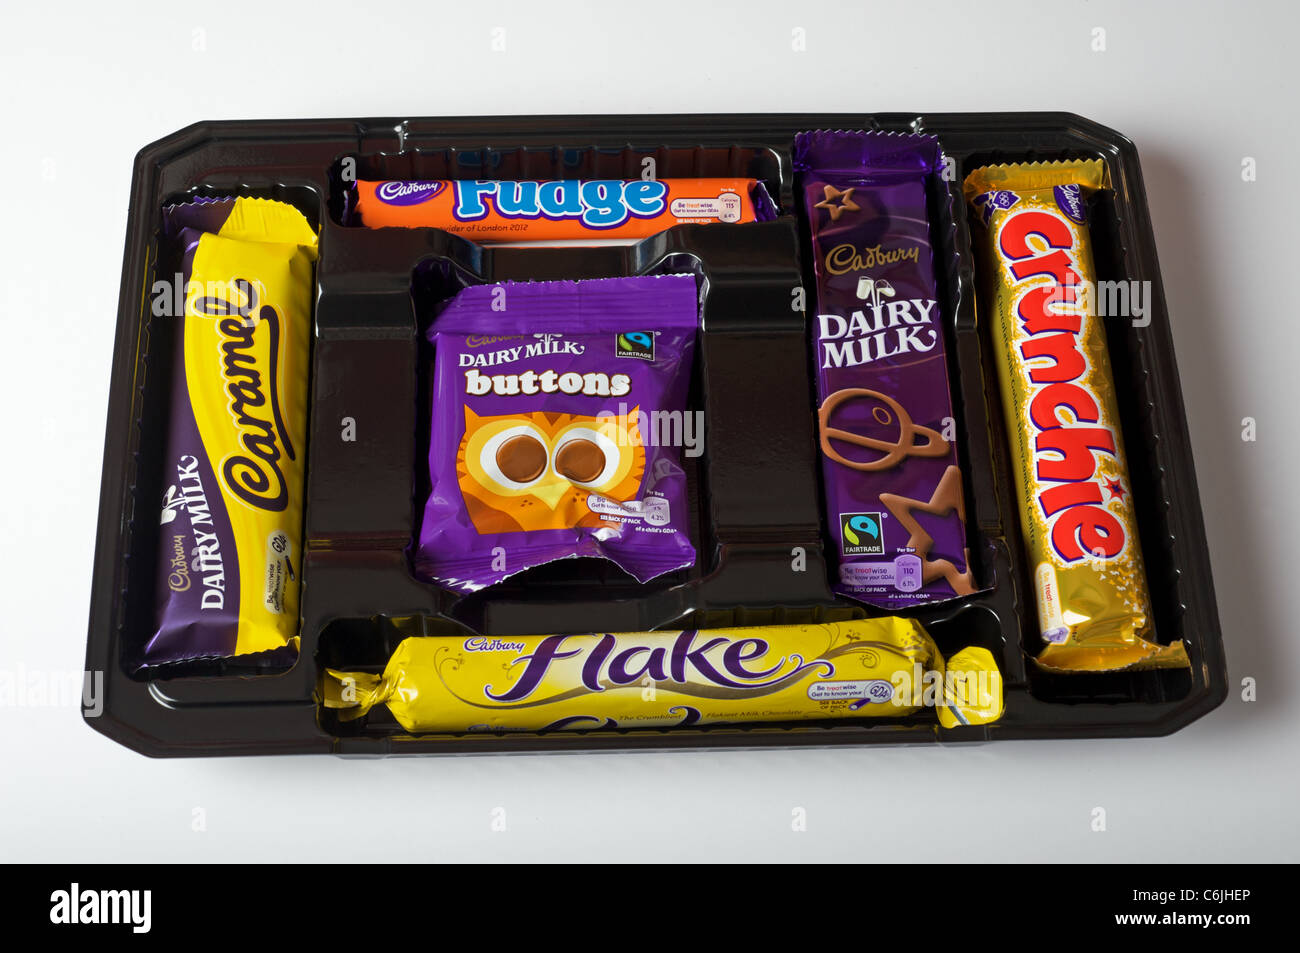 Cadbury Dairy Milk Chocolate Stock Photos & Cadbury Dairy Milk ...